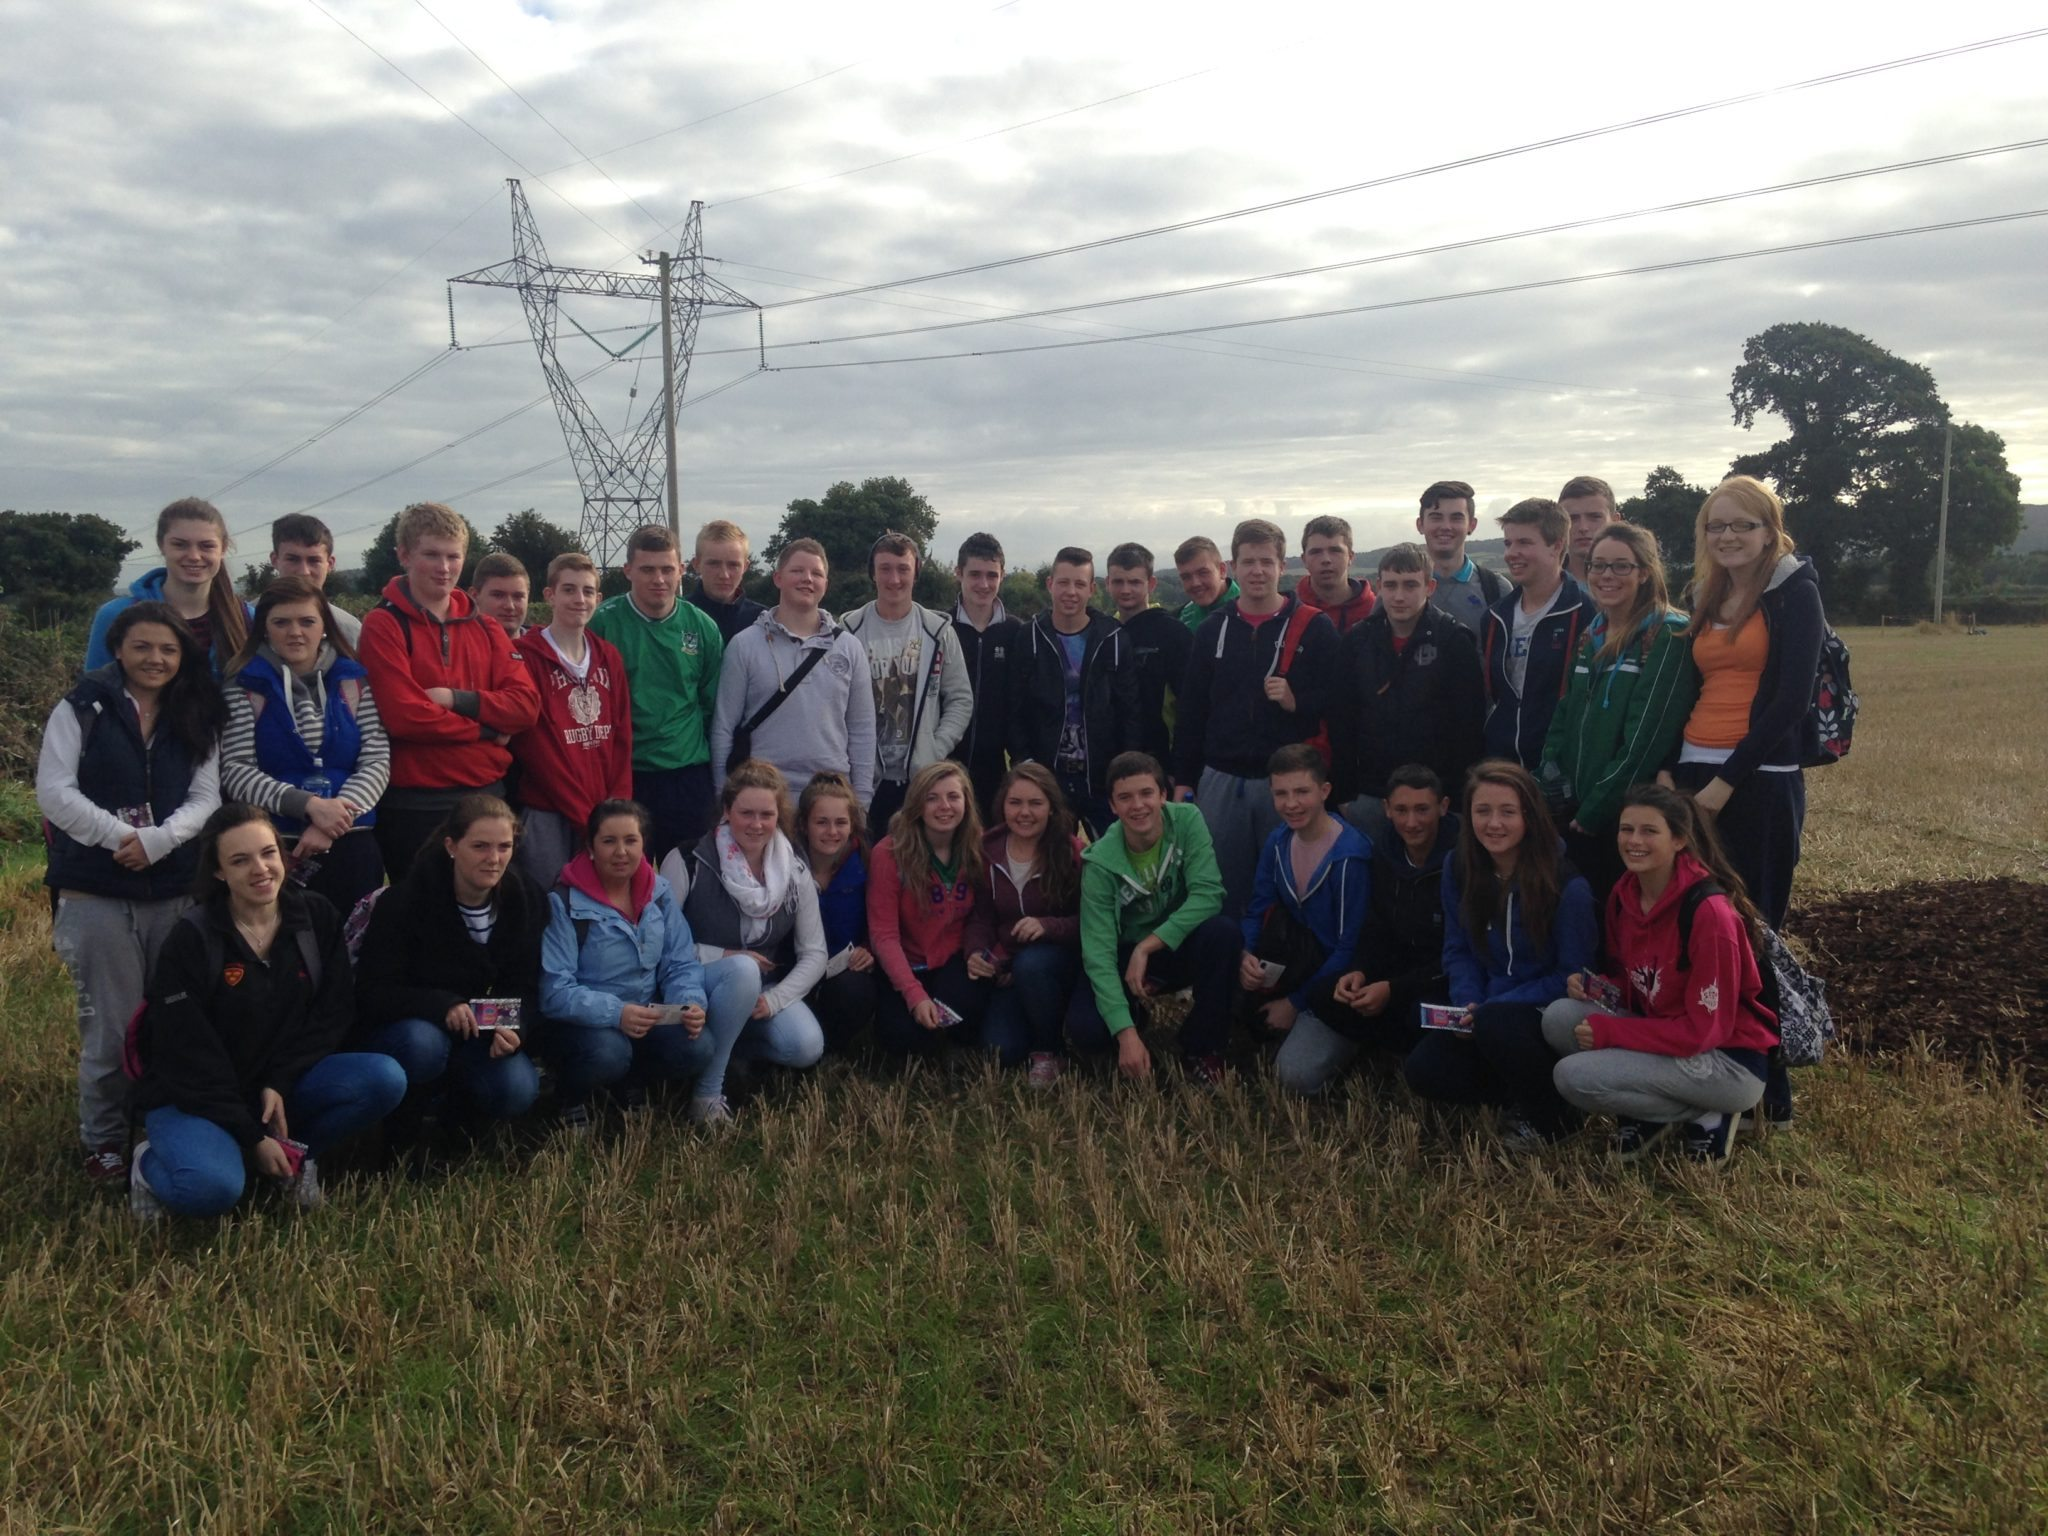 Desmond College Students at the Ploughing Championship 2014